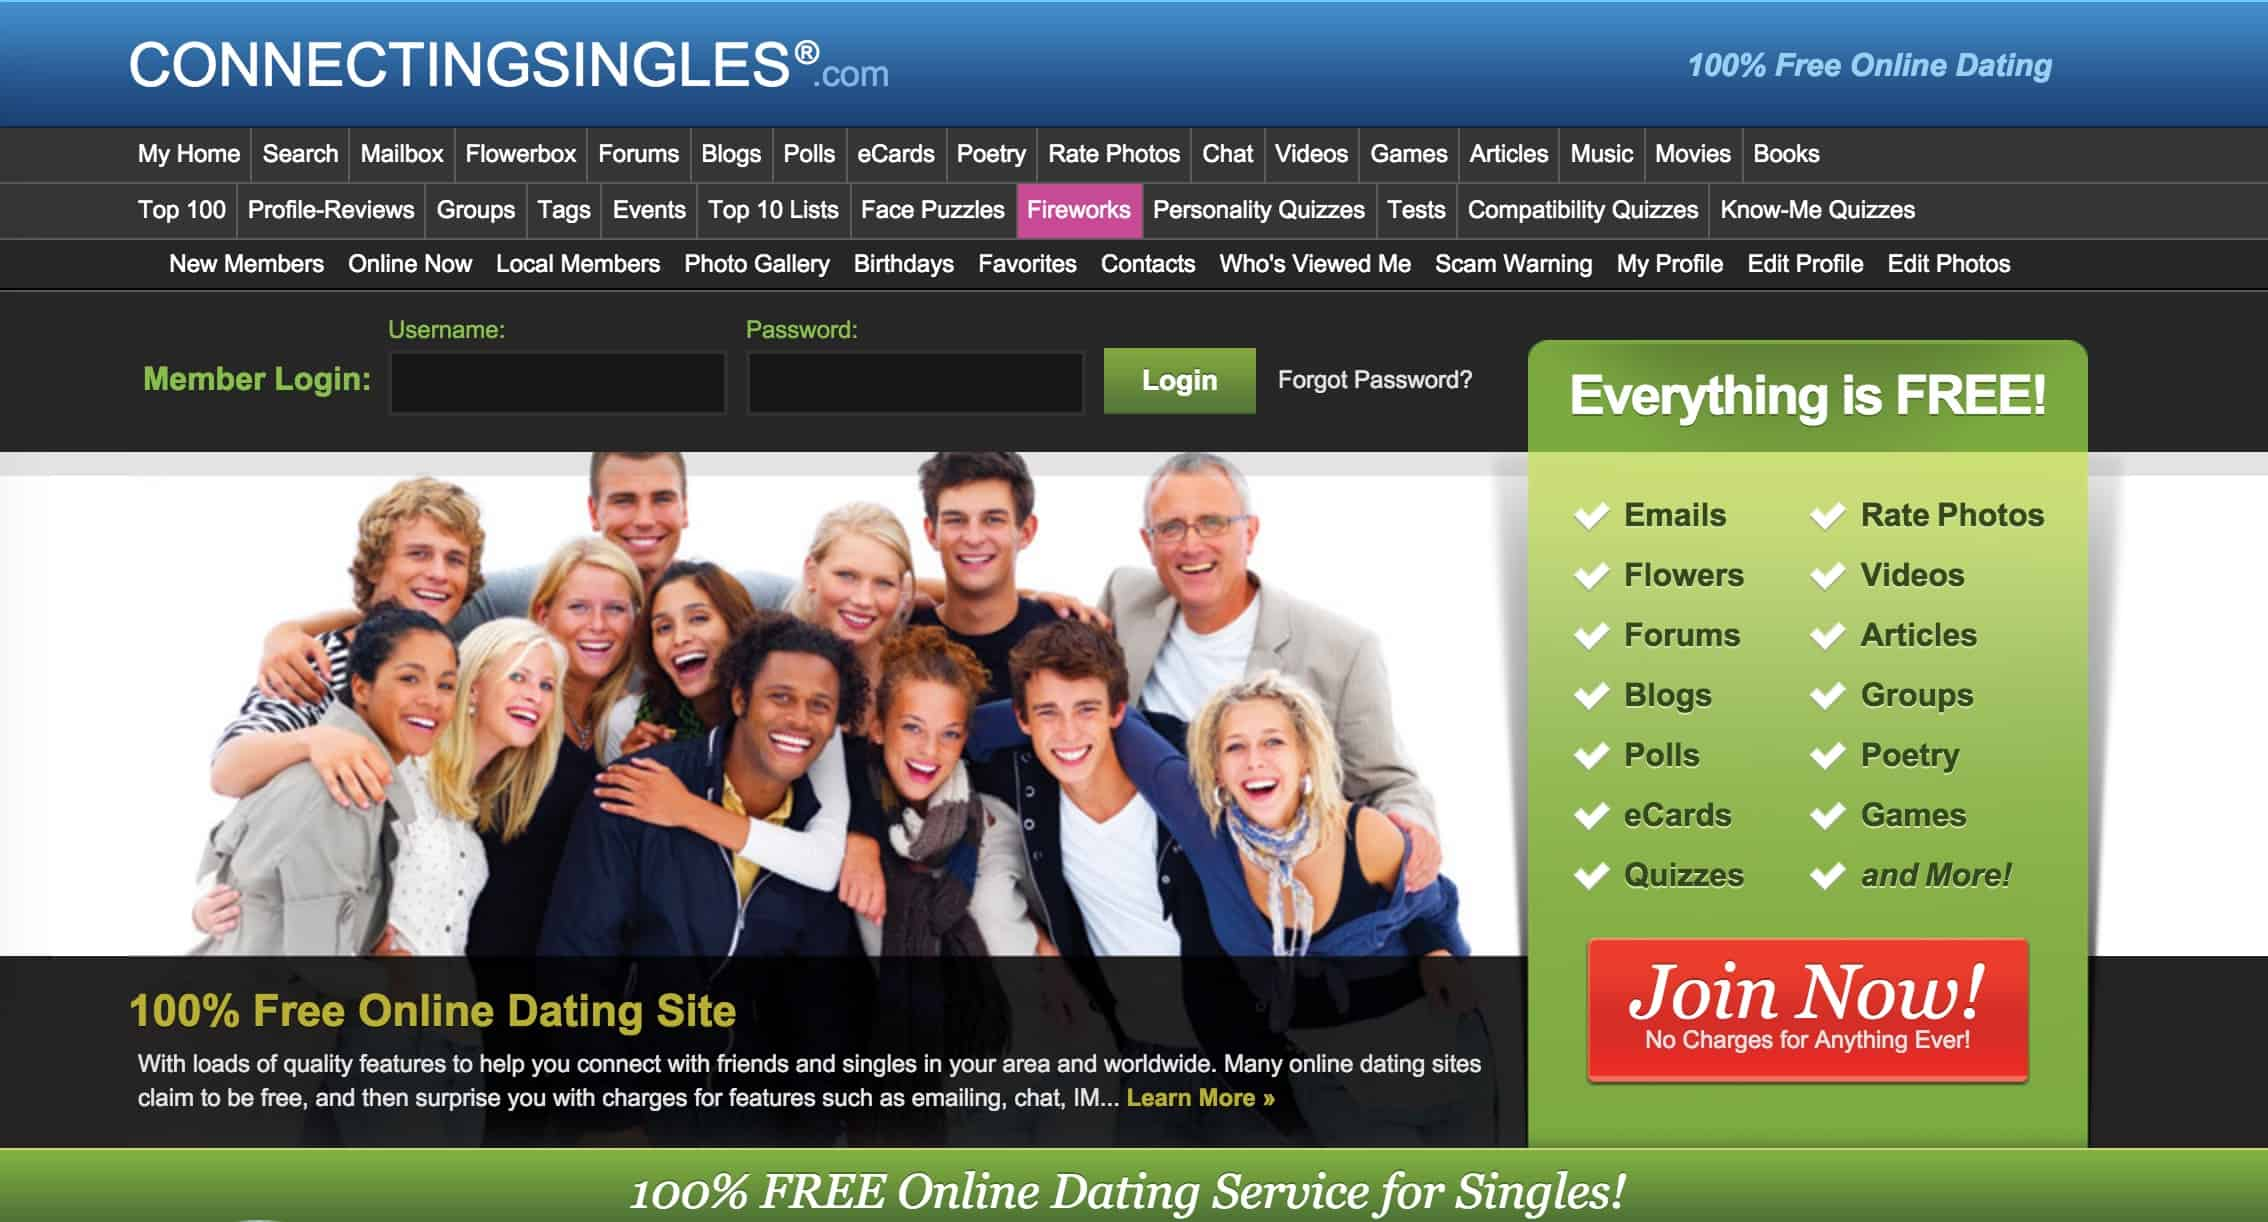 free online personals in chokoloskee Free on line personals - visit the most popular and simplest online dating site to flirt, chart, or date with interesting people online, sign up for free free on line personals yet a further advantage of online dating is the support you are able to meet people from all over the world that you are unlikely to meet otherwise.